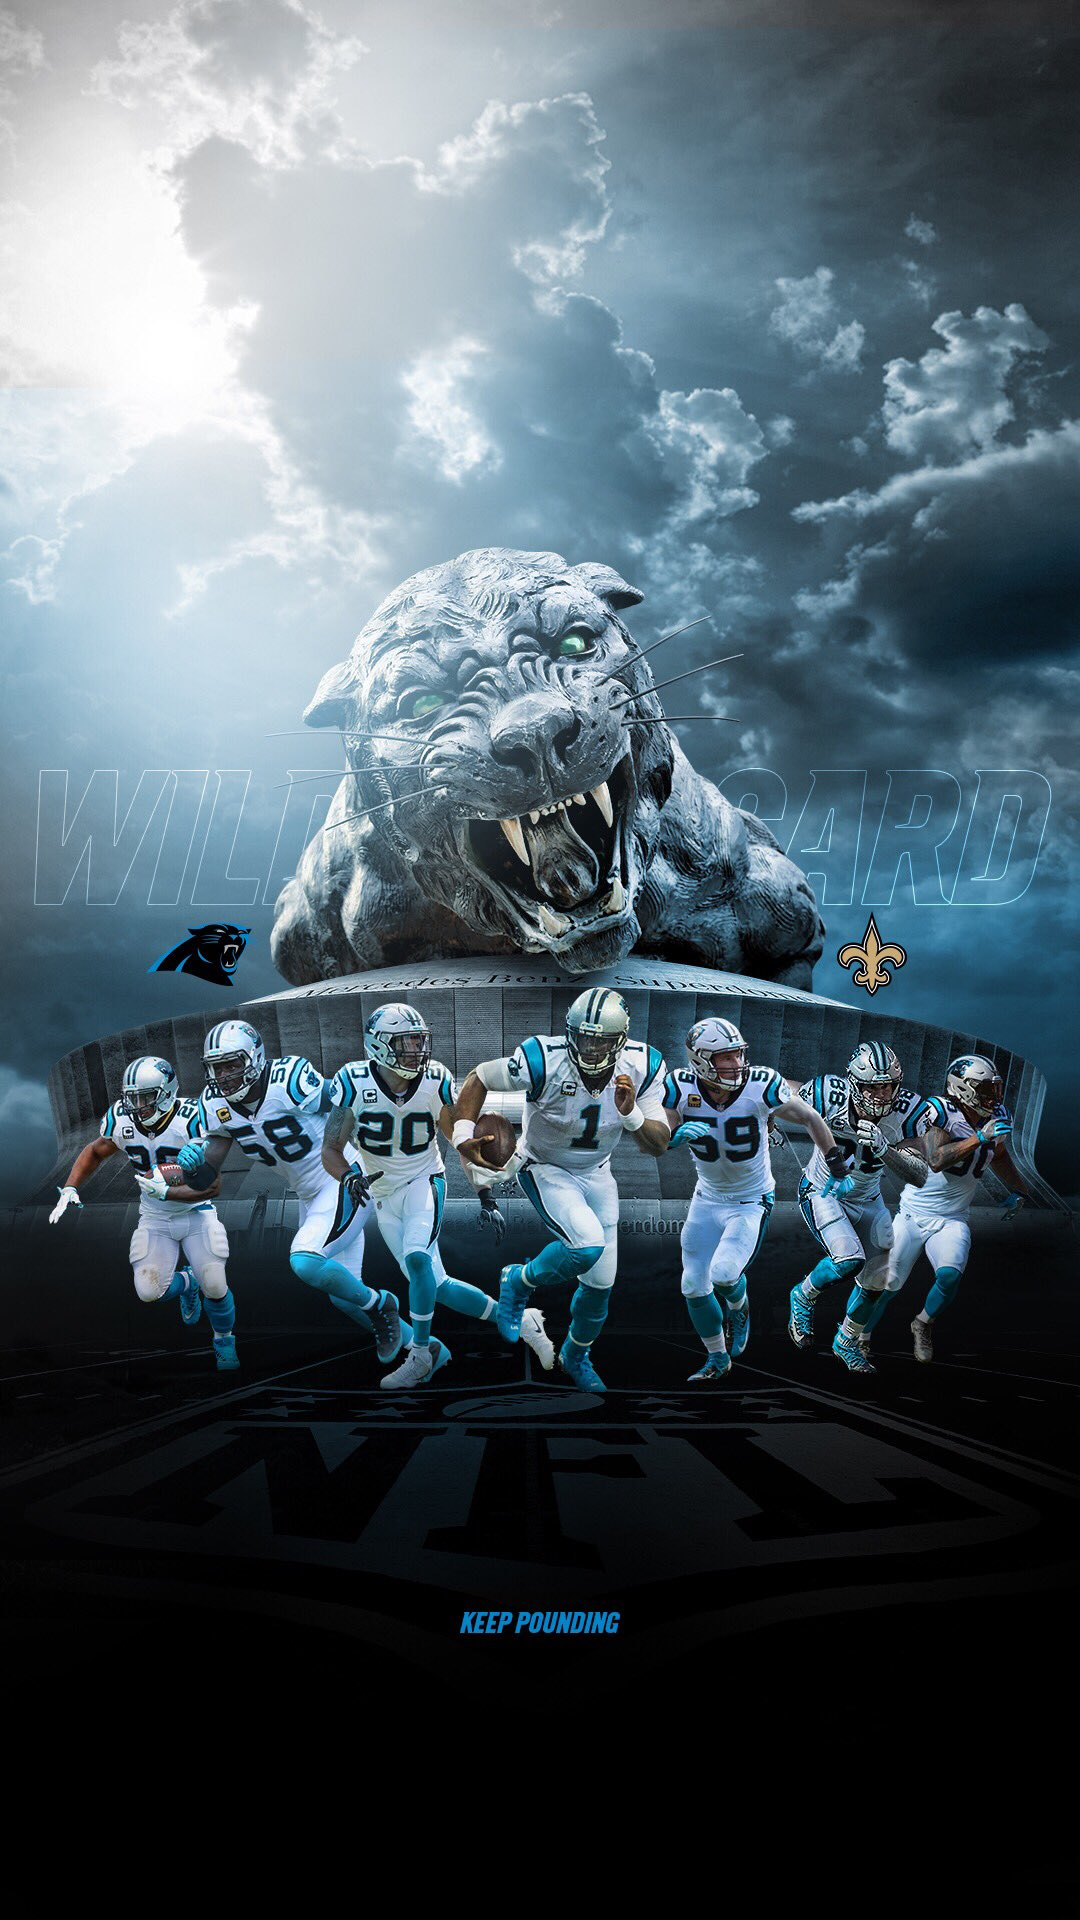 Carolina PanthersVerified account